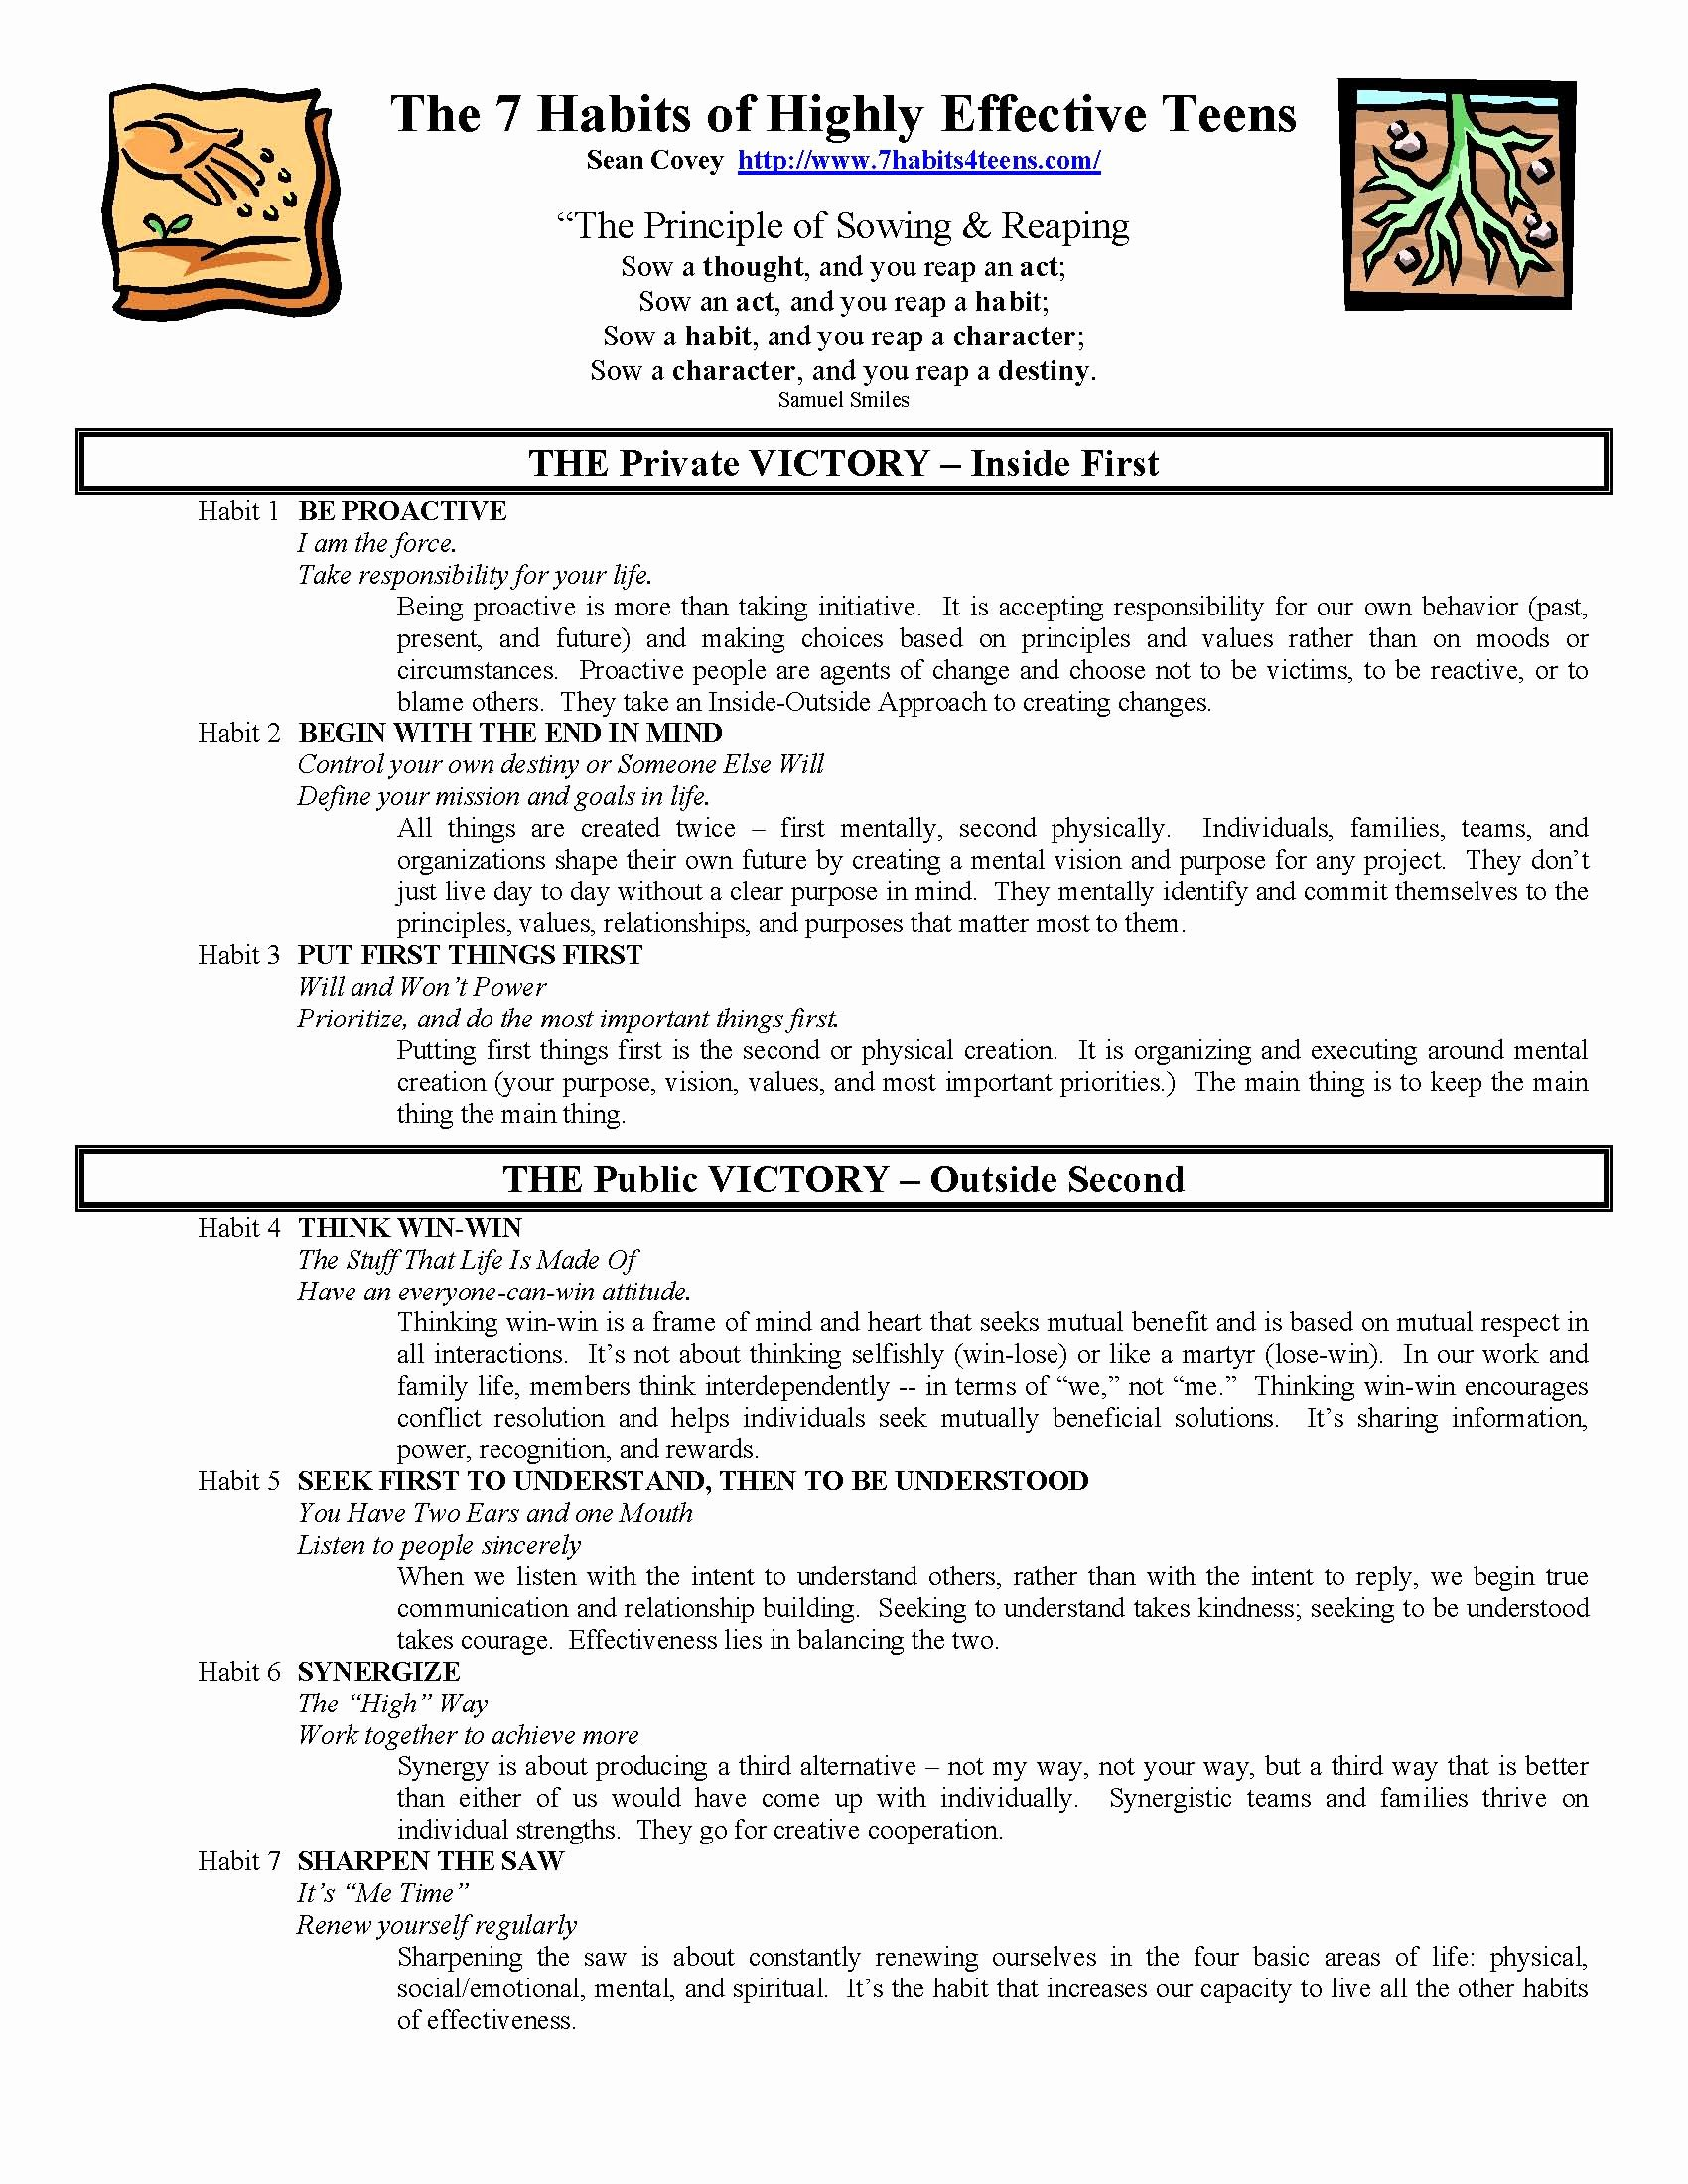 50 7 Habits Worksheet